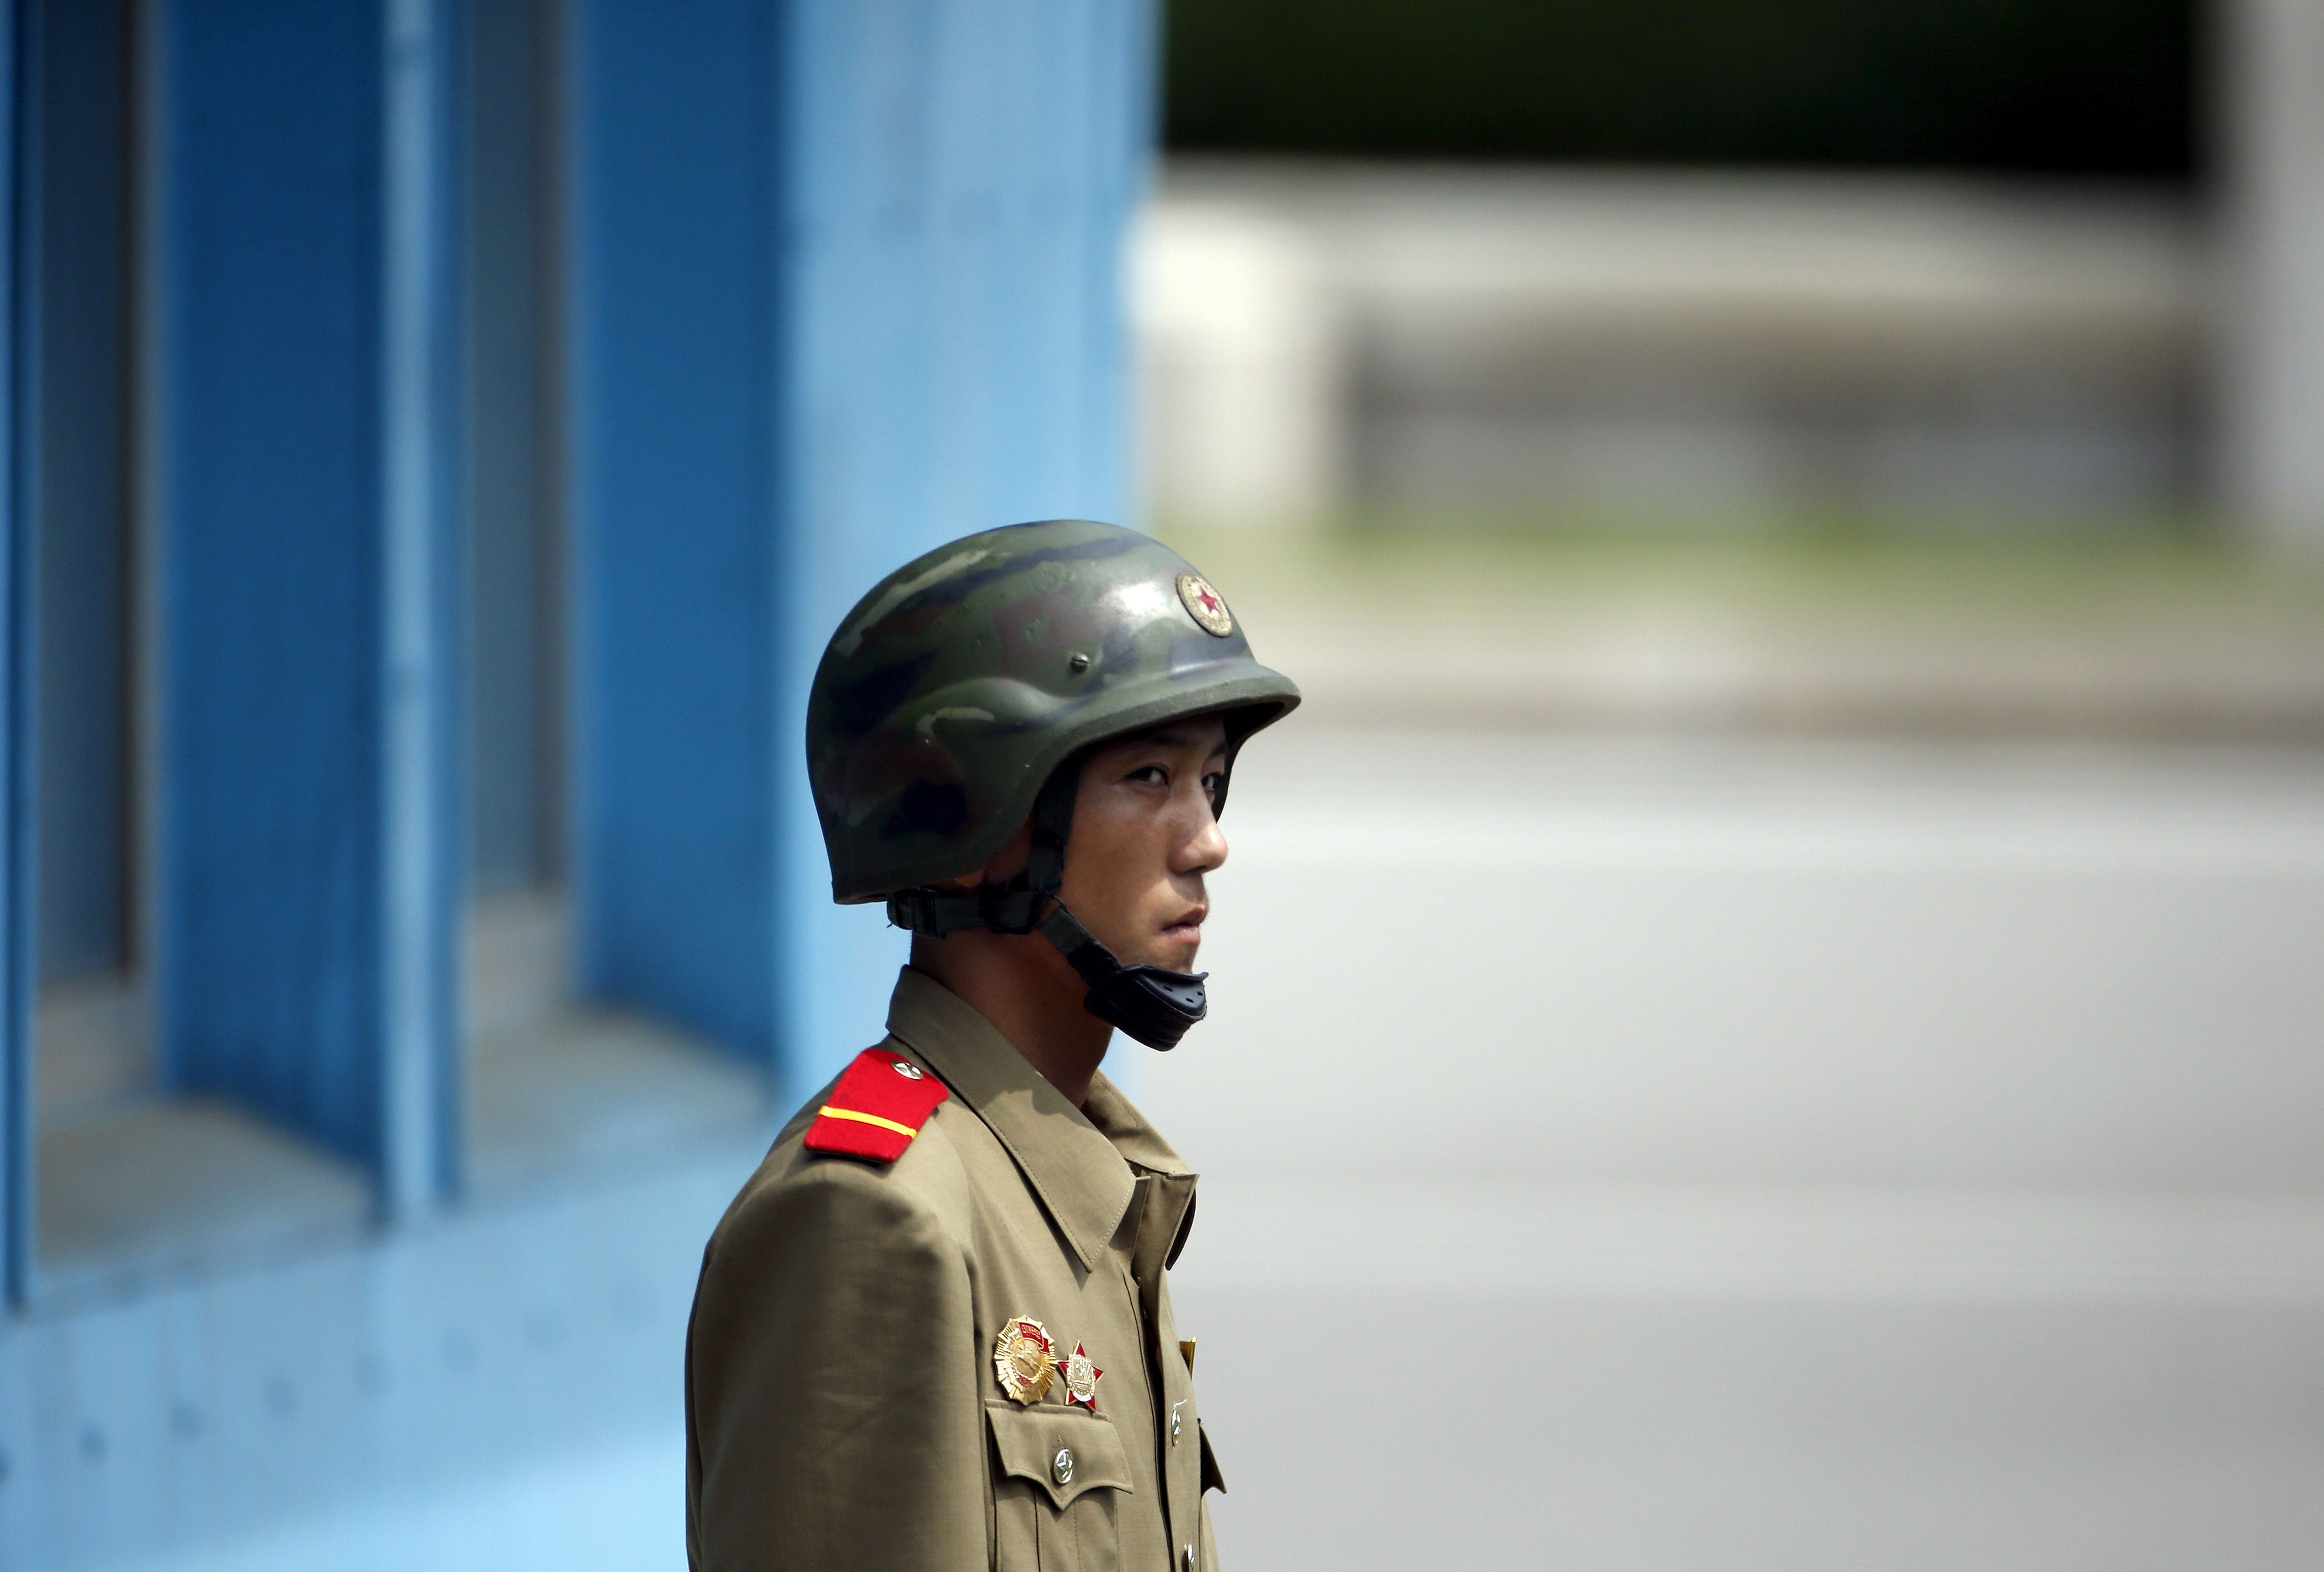 relation between north and south korea Between 1953 and 1961, america gave approximately $2 billion in aid to south korea, around 10 per cent of gdp per capita incomes were lower than in ghana or sudan and nothing seemed to get the economy going.